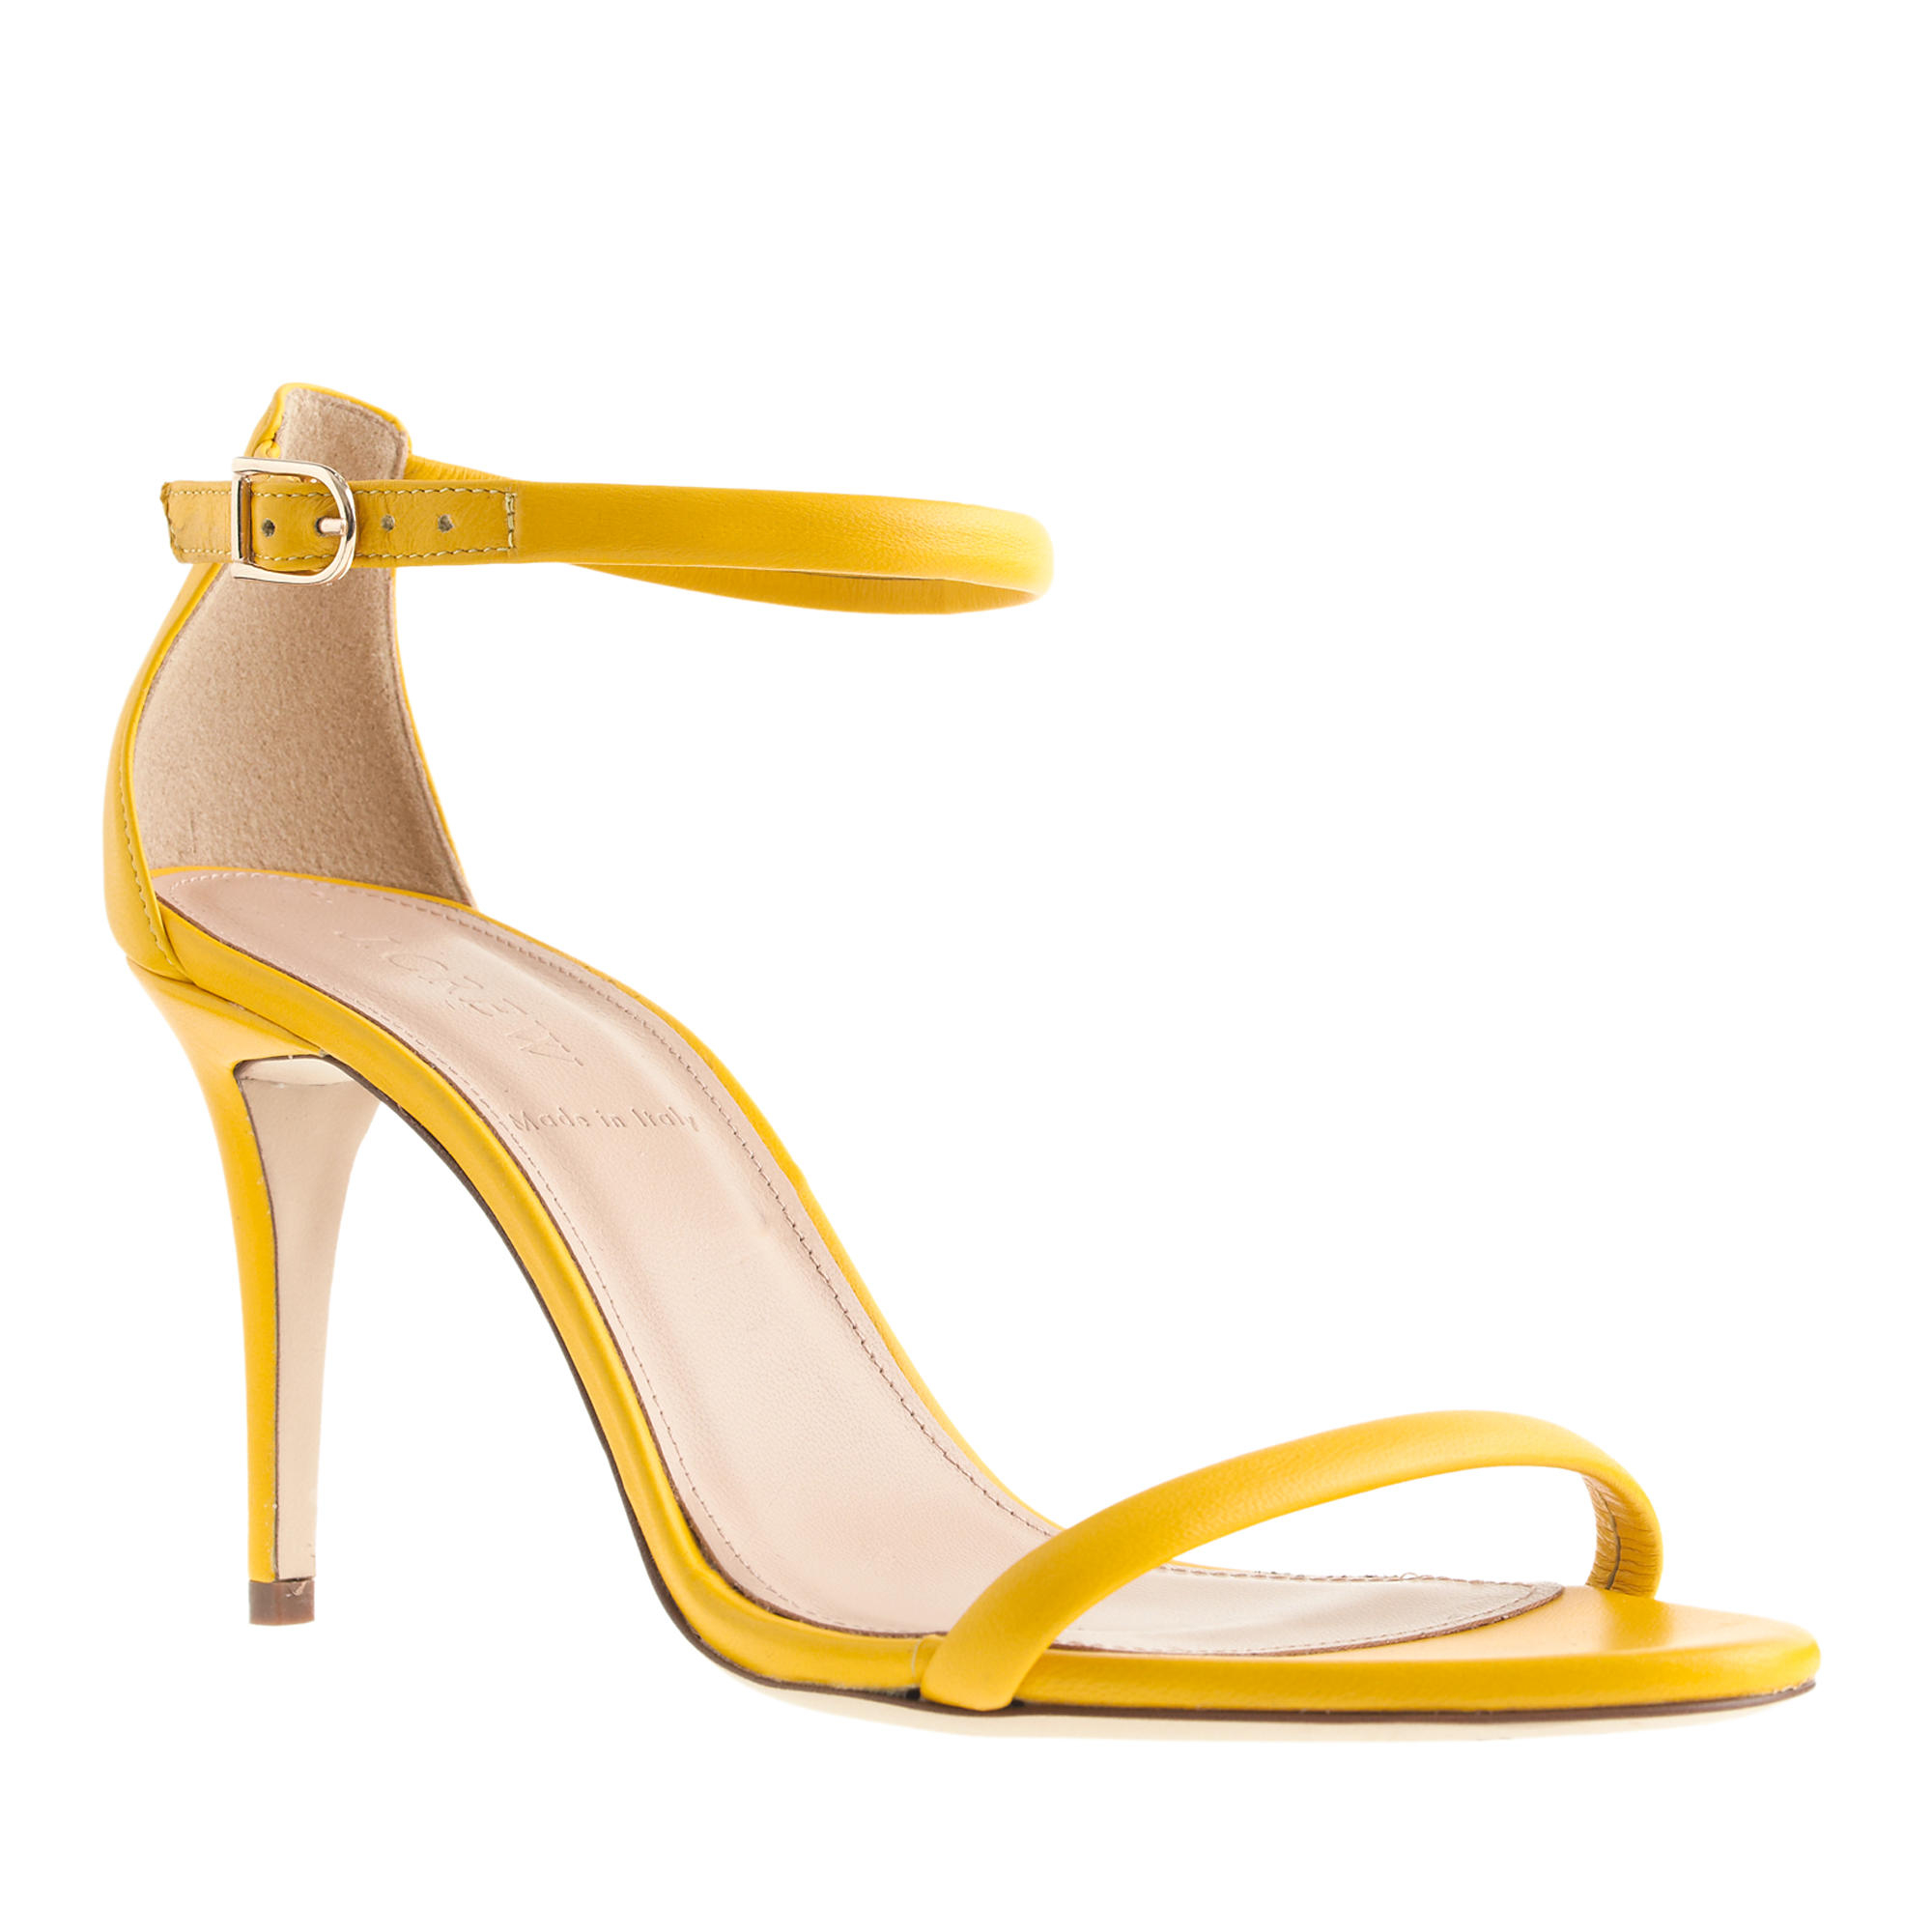 J.crew Strappy High-heel Sandals in Yellow | Lyst